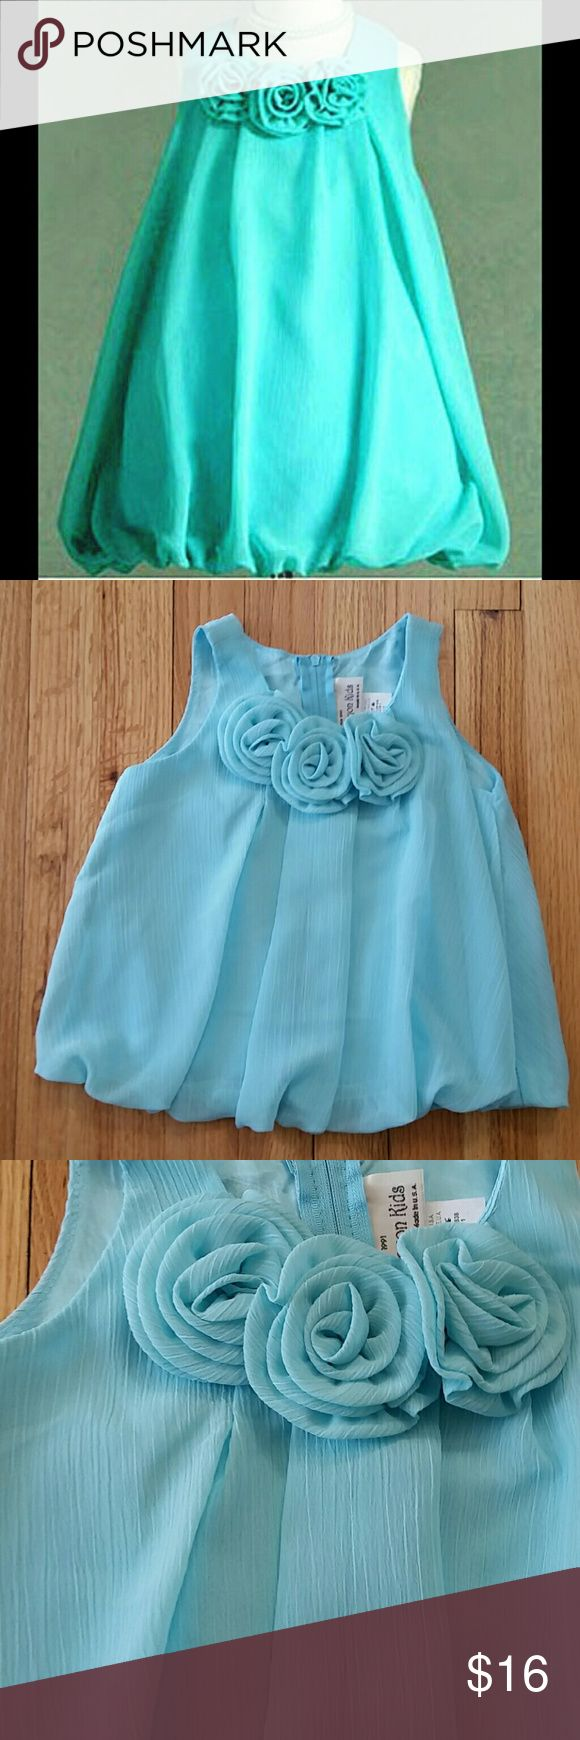 Crayon Kids Boutique NWT Aqua Blue Bubble Dress Aqua blue bubble hemmed dress by Crayon Kids.  Brand new with tags; never worn.  Removable (pinned) swirled rosette flowers at neckline.  Zipper closure in back.  Fully lined.  100% polyester.  Made in USA.  Color in first picture is most accurate. Crayon Kids Dresses Formal